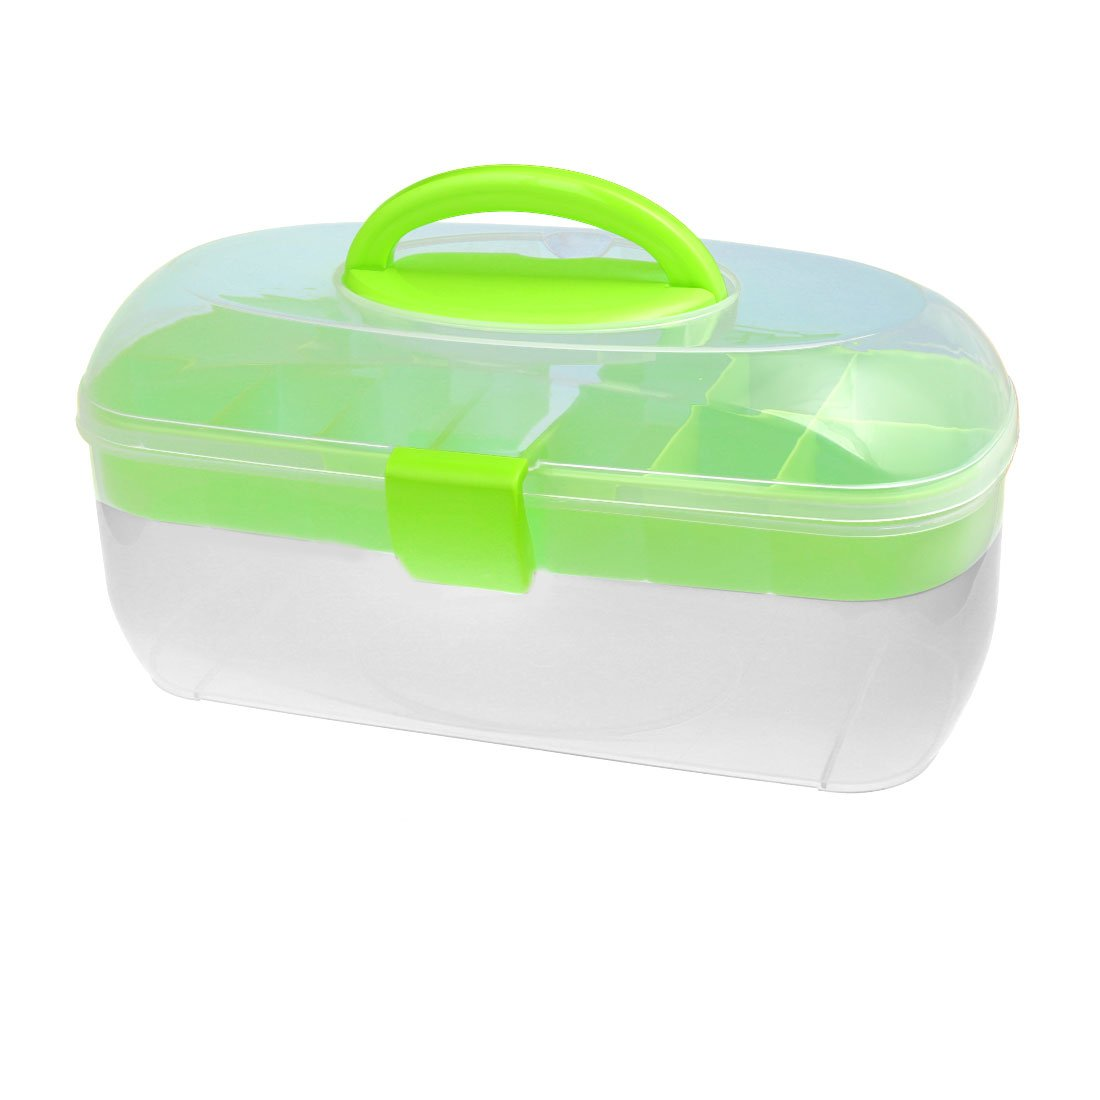 uxcell Household Oval-Shaped Empty Nail Art Makeup Cosmetic Tool Container Storage Box